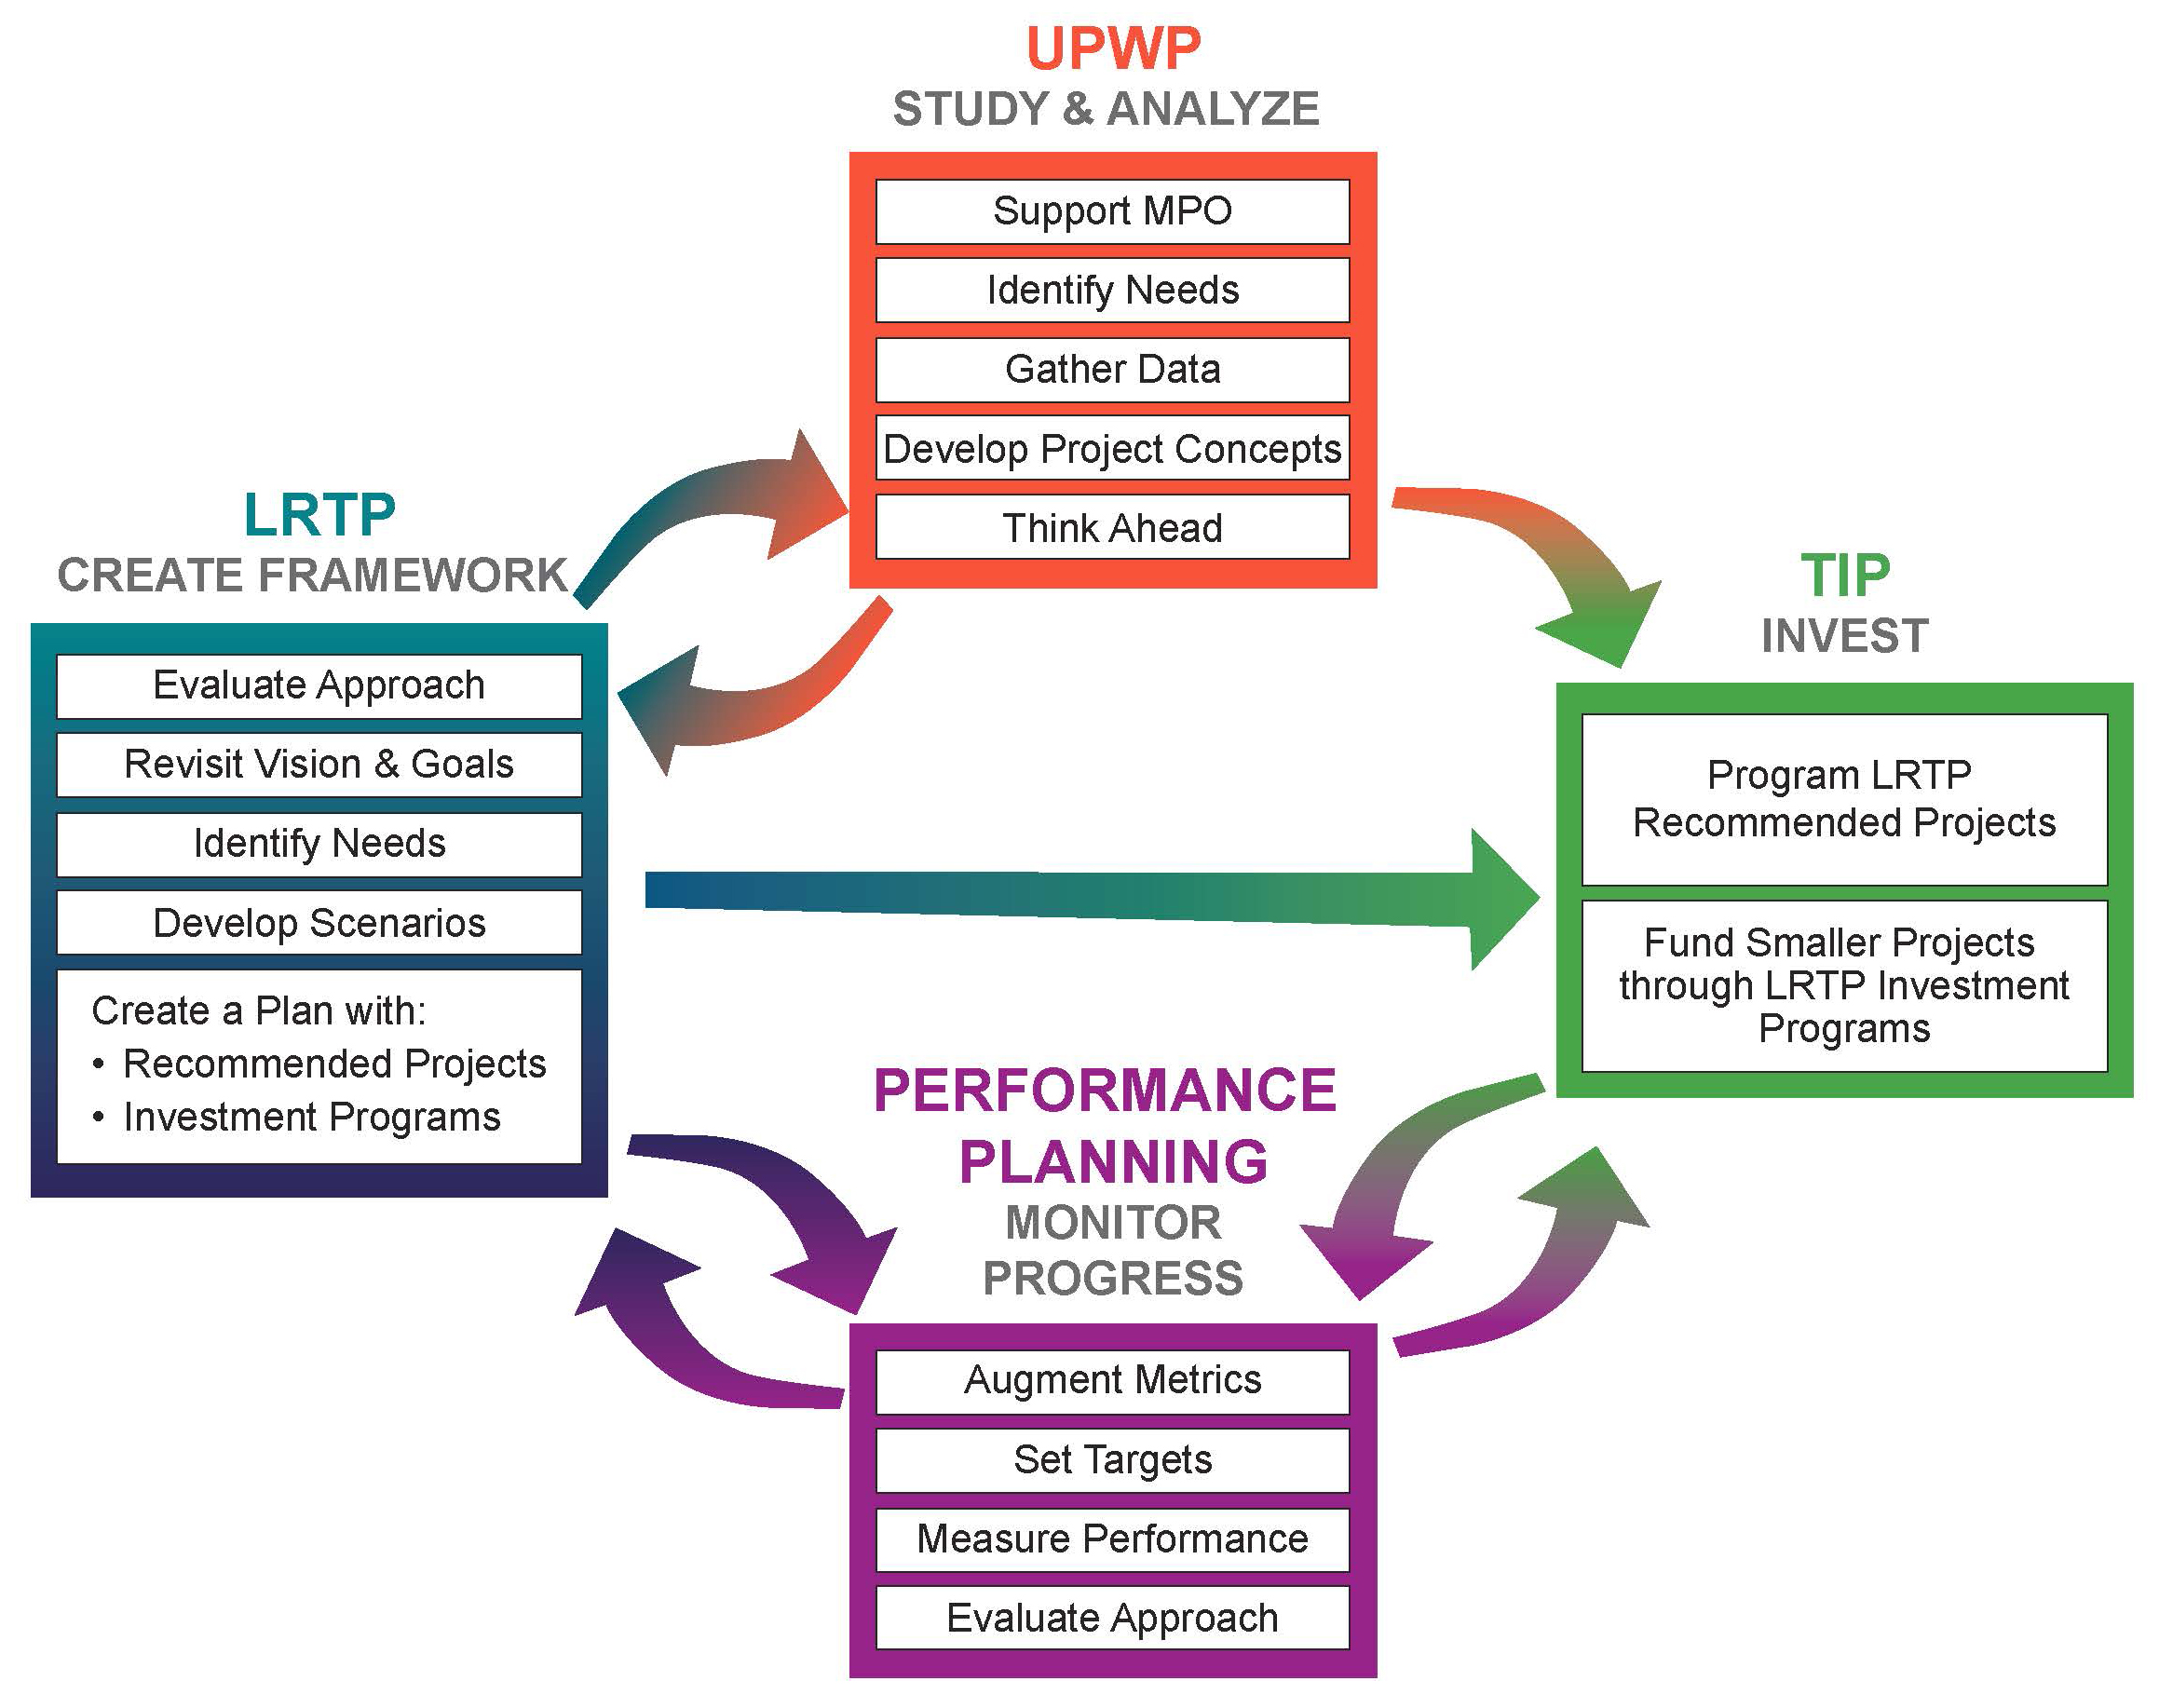 This diagram shows how the elements within the LRTP, TIP, UPWP, and performance planning are related, and how they inform each other.